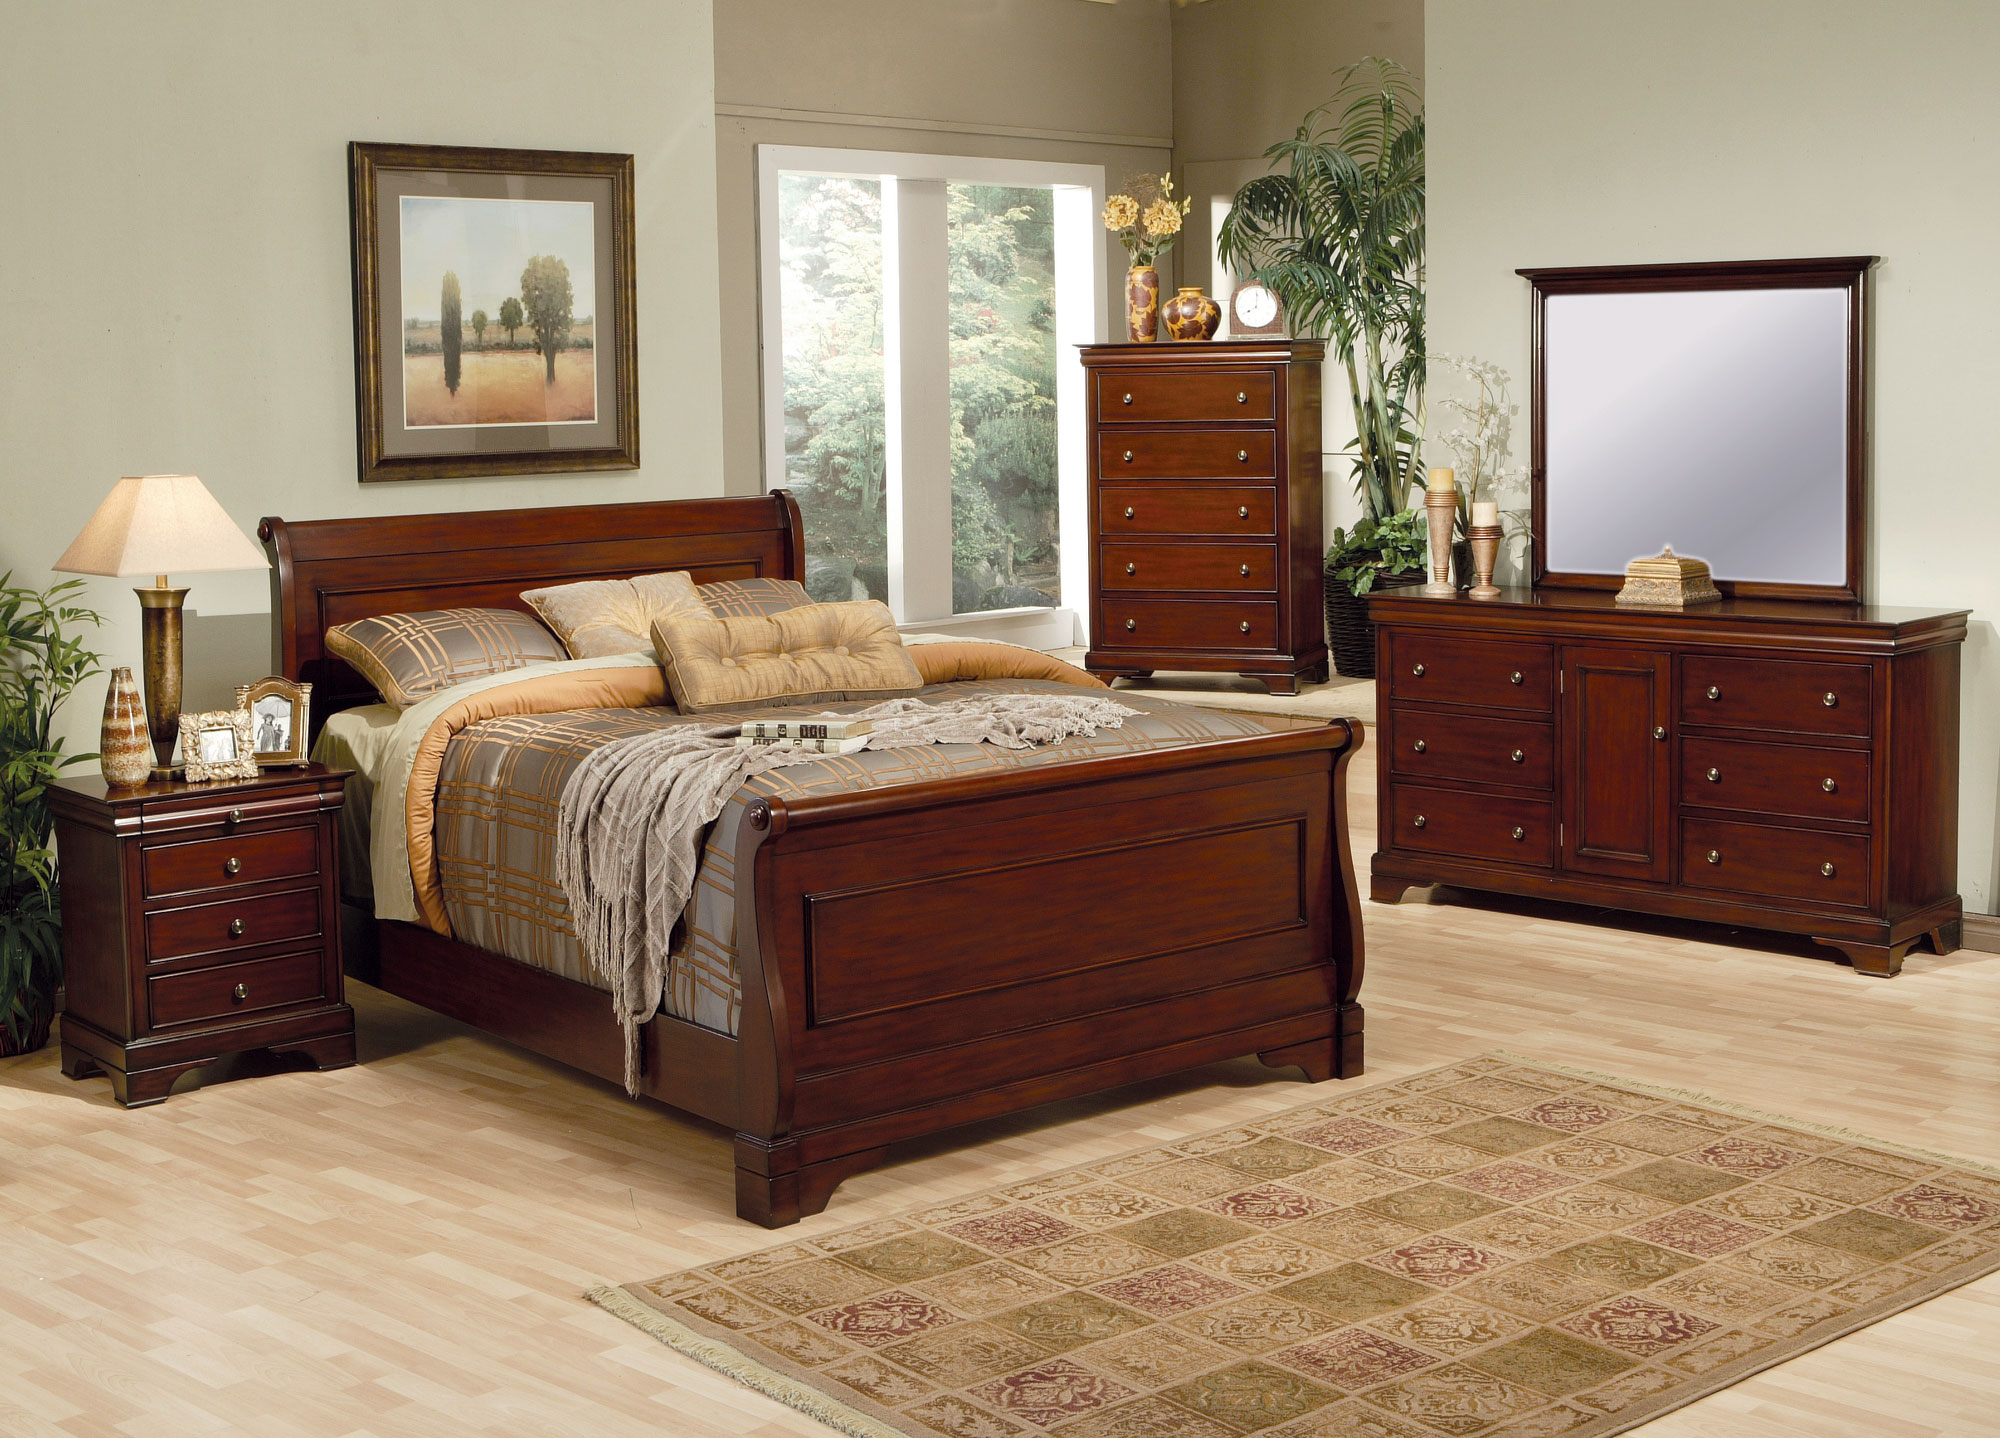 How to style with premium mahogany bedroom furniture